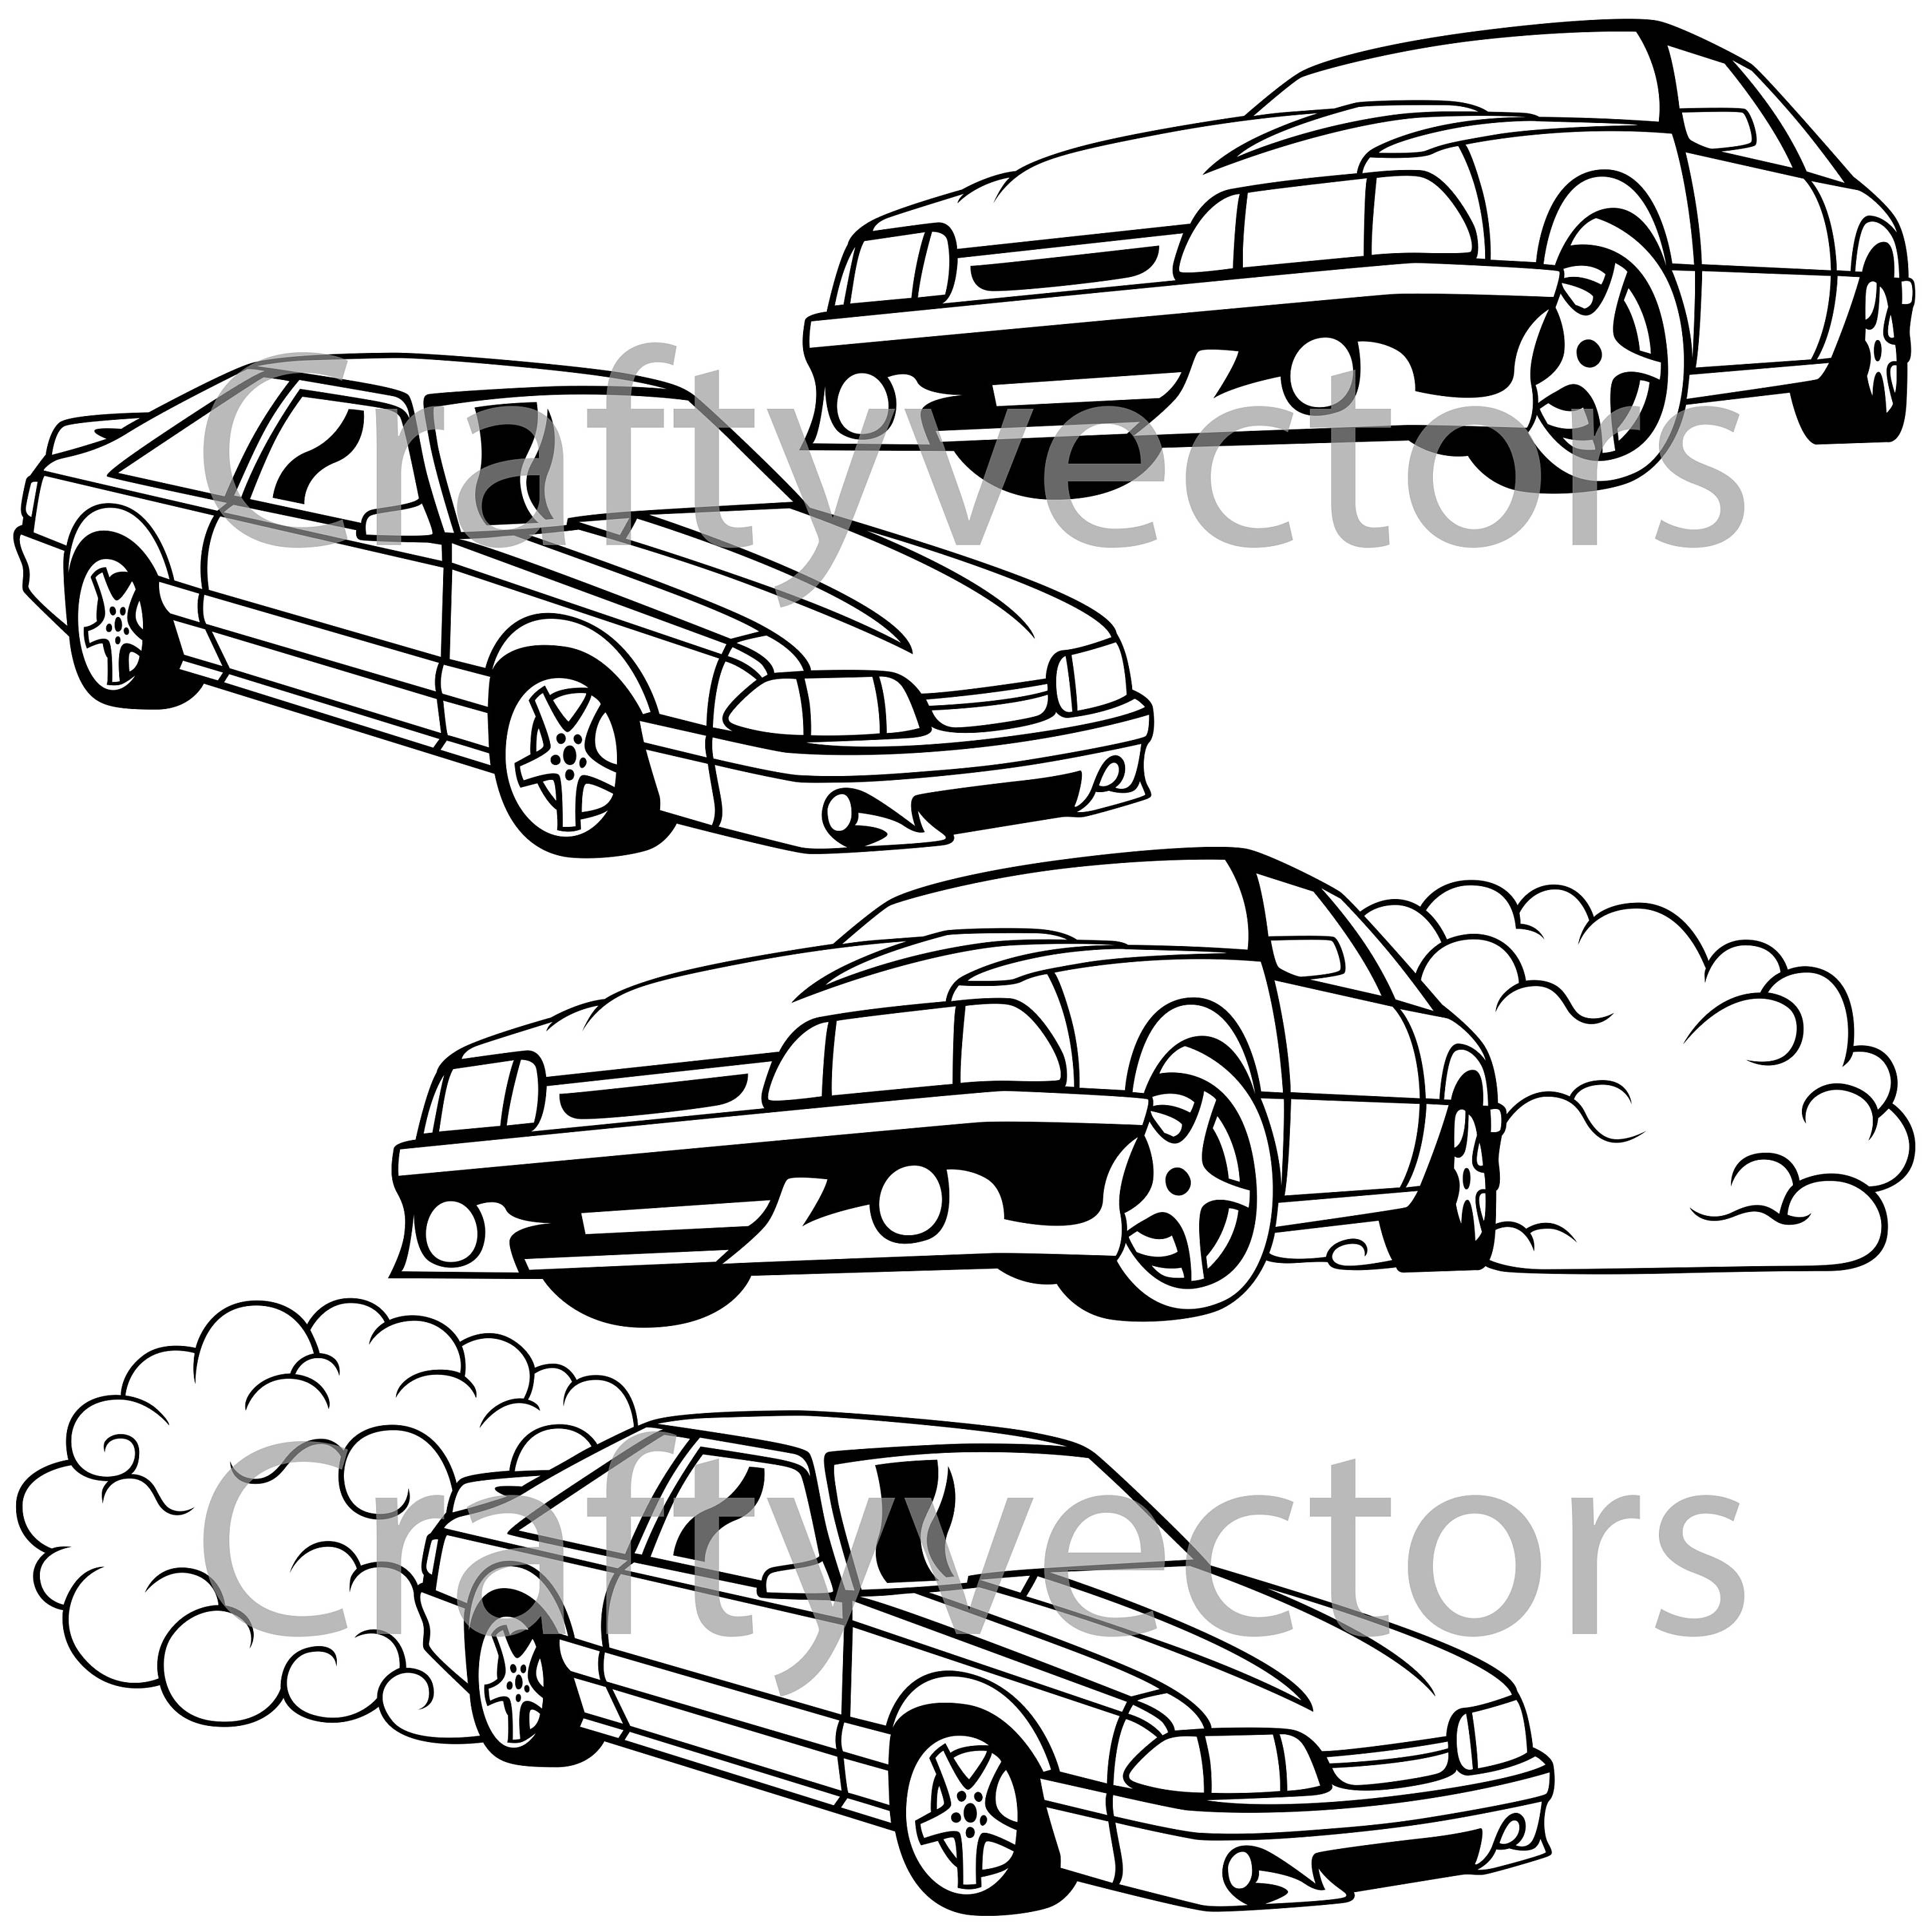 3000x3000 Ford Mustang Fox Body Vector Svg Cut File